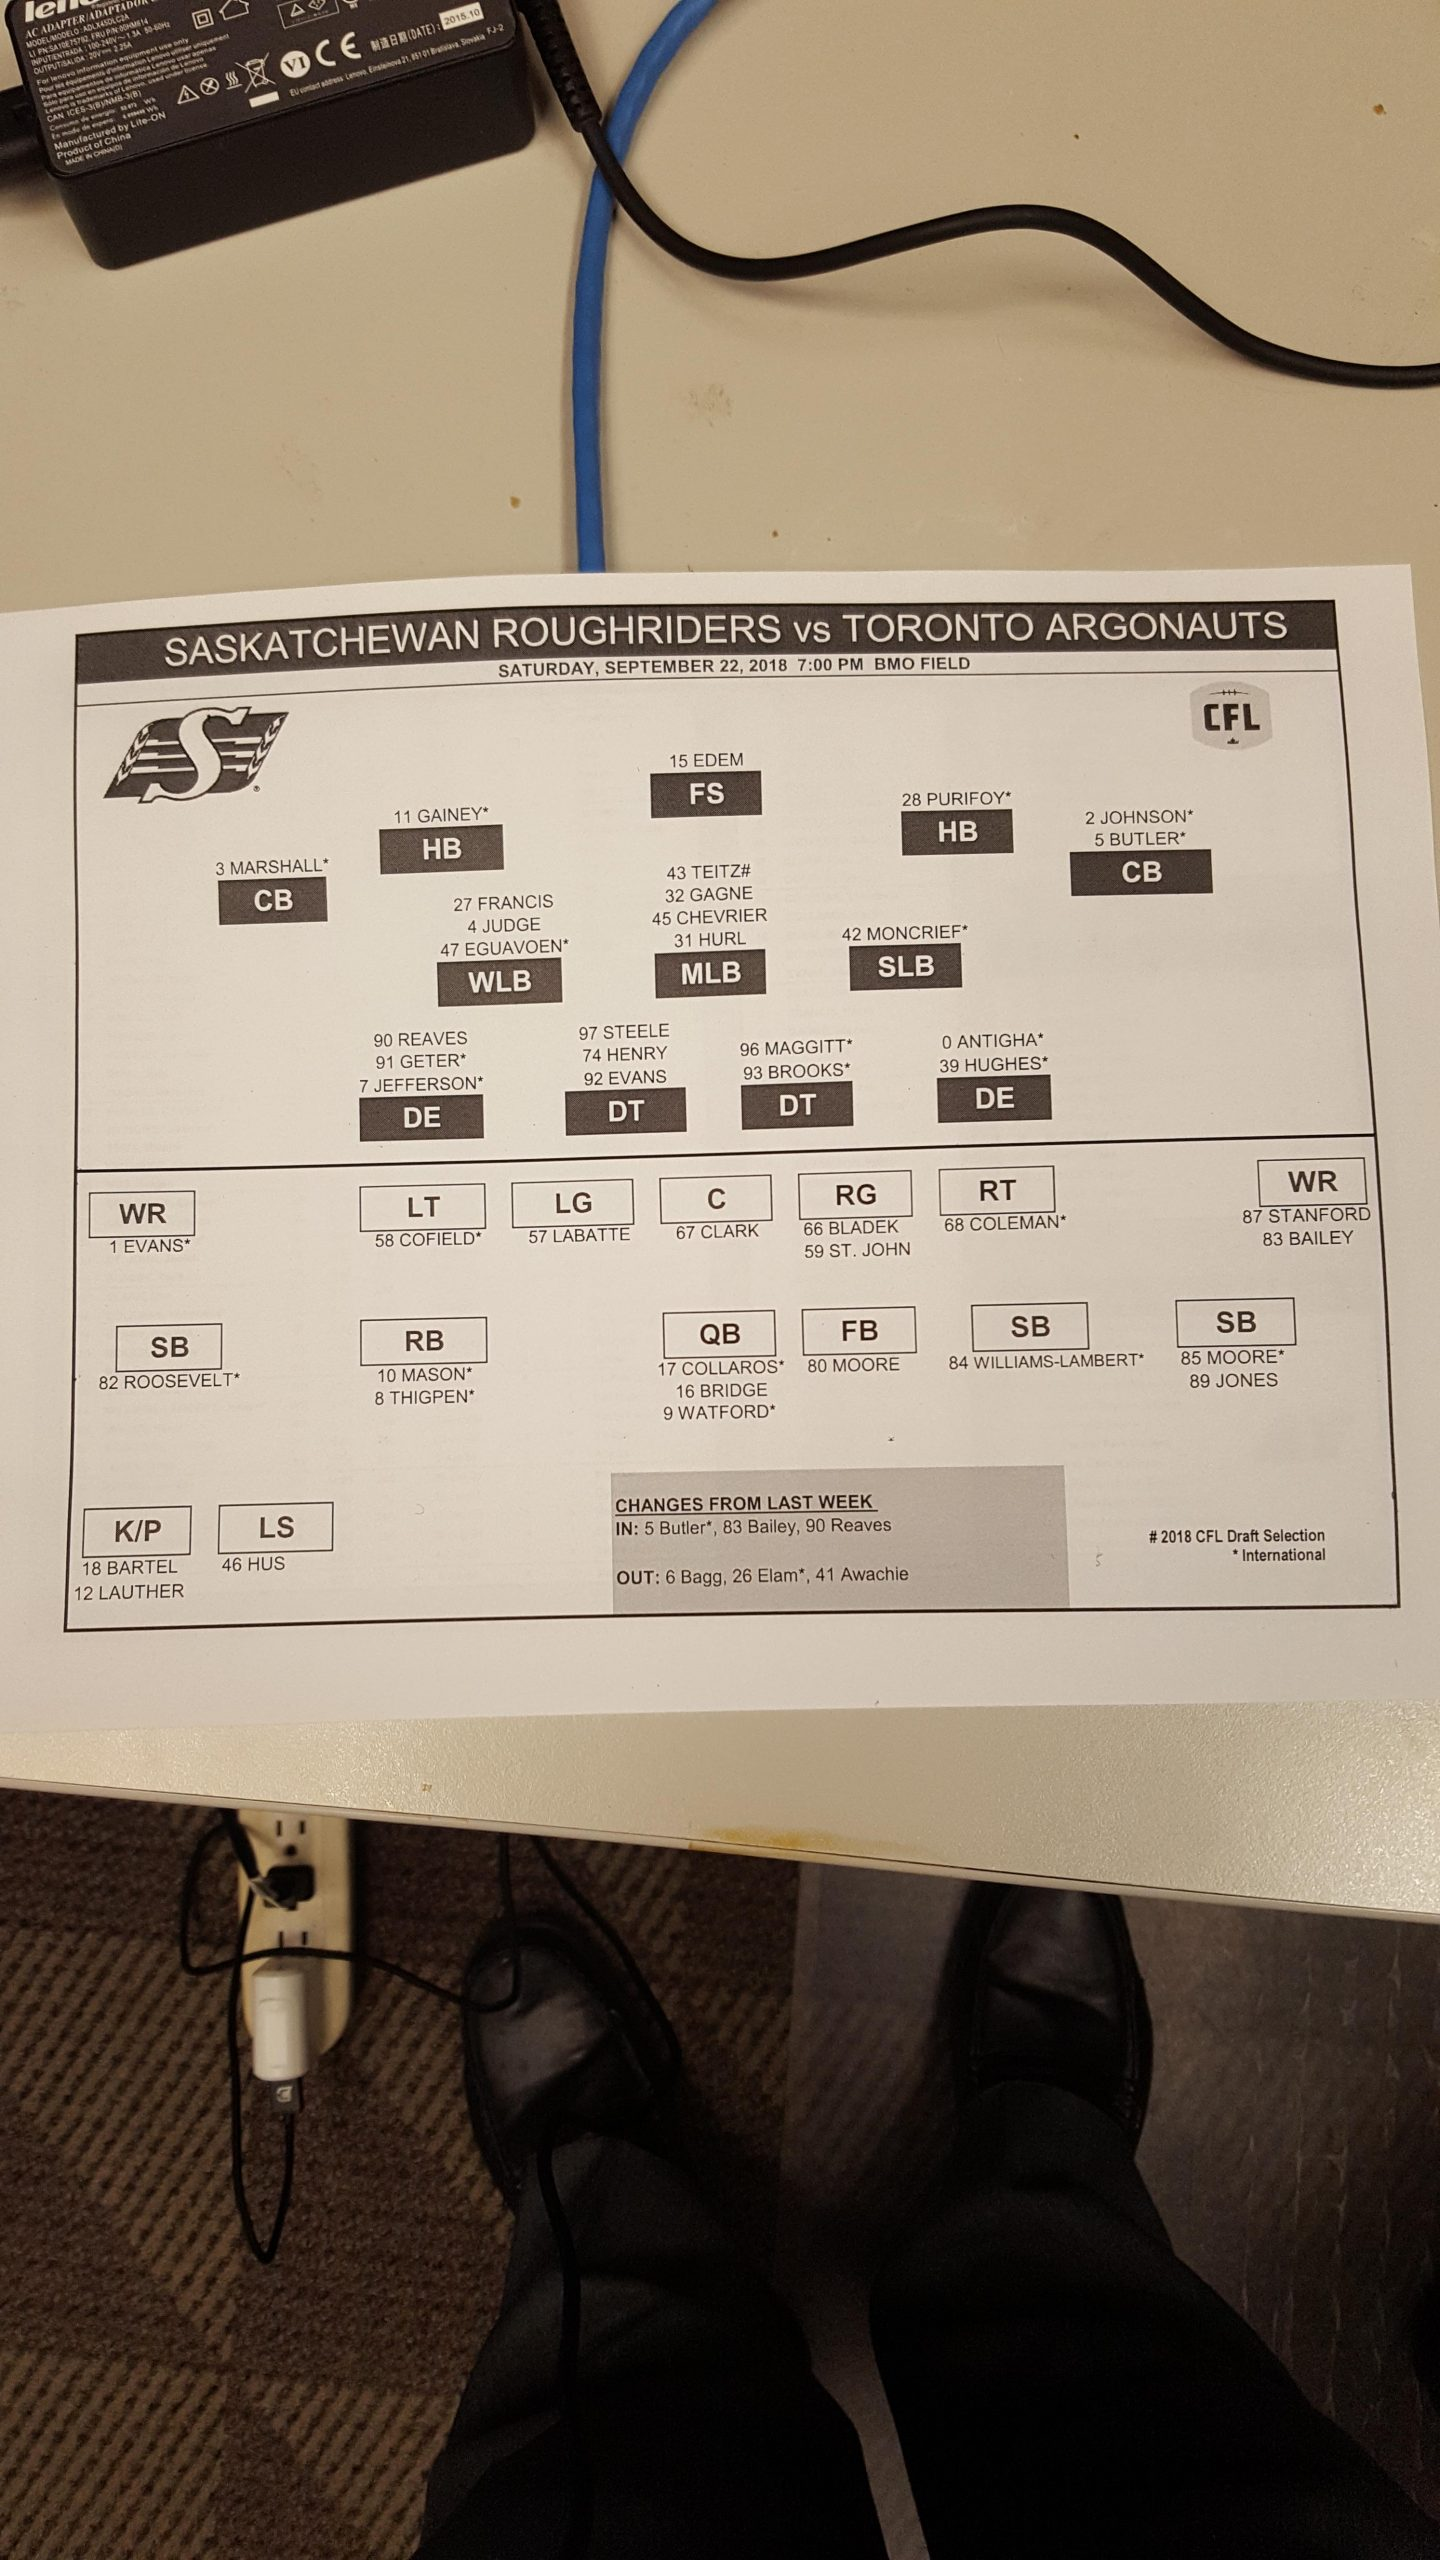 Butler in for Elam, As Expected, As Riders Head to Toronto